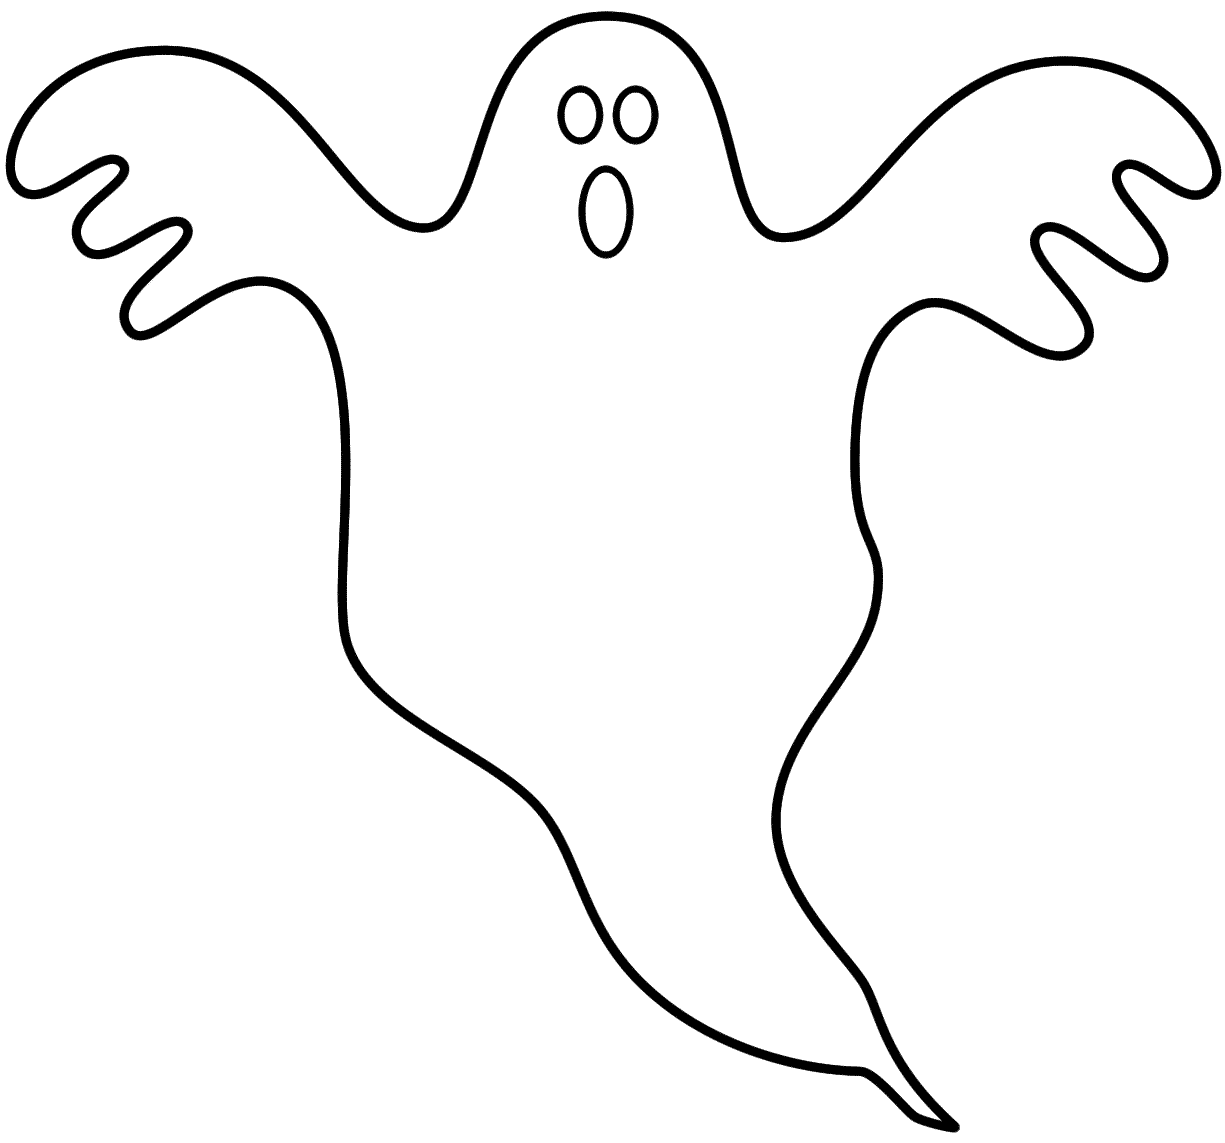 ghost-coloring-page-0015-q1